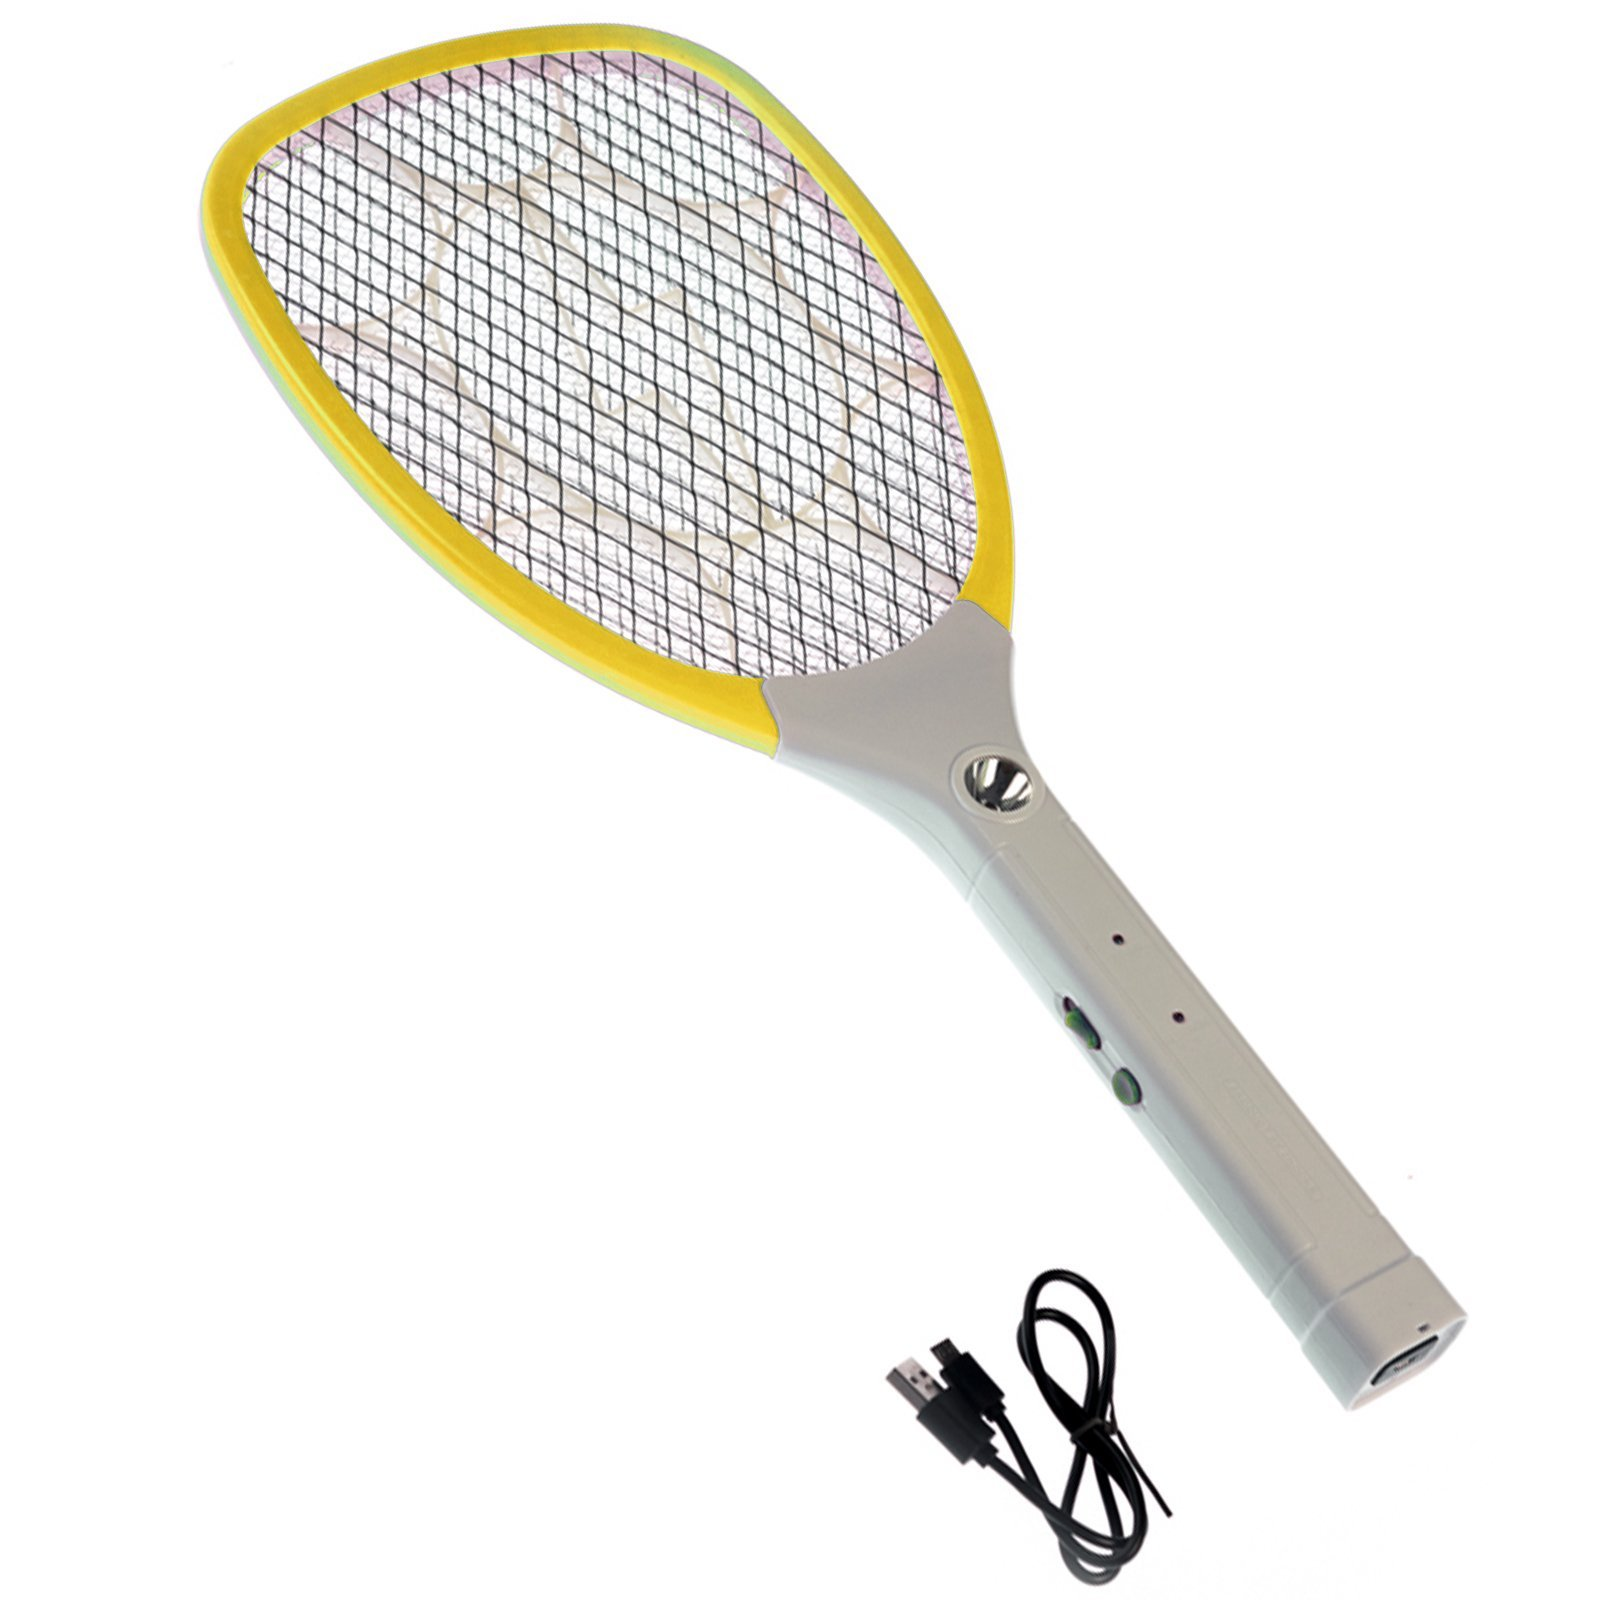 ASR Outdoor Handheld Micro USB Rechargeable Bug Zapper Flashlight Paddle- Yellow